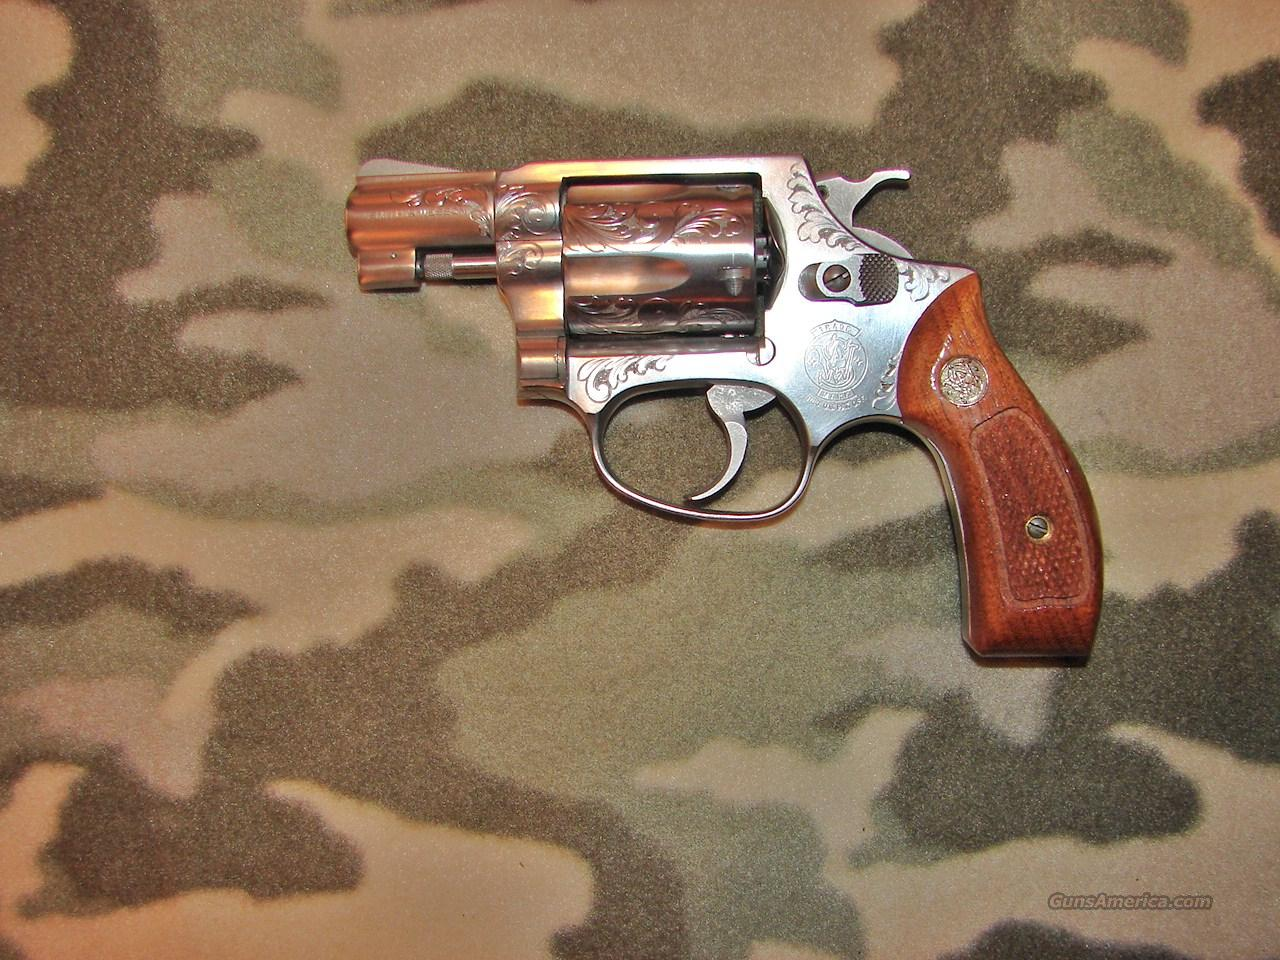 Smith & Wesson 60  Guns > Pistols > Smith & Wesson Revolvers > Pocket Pistols